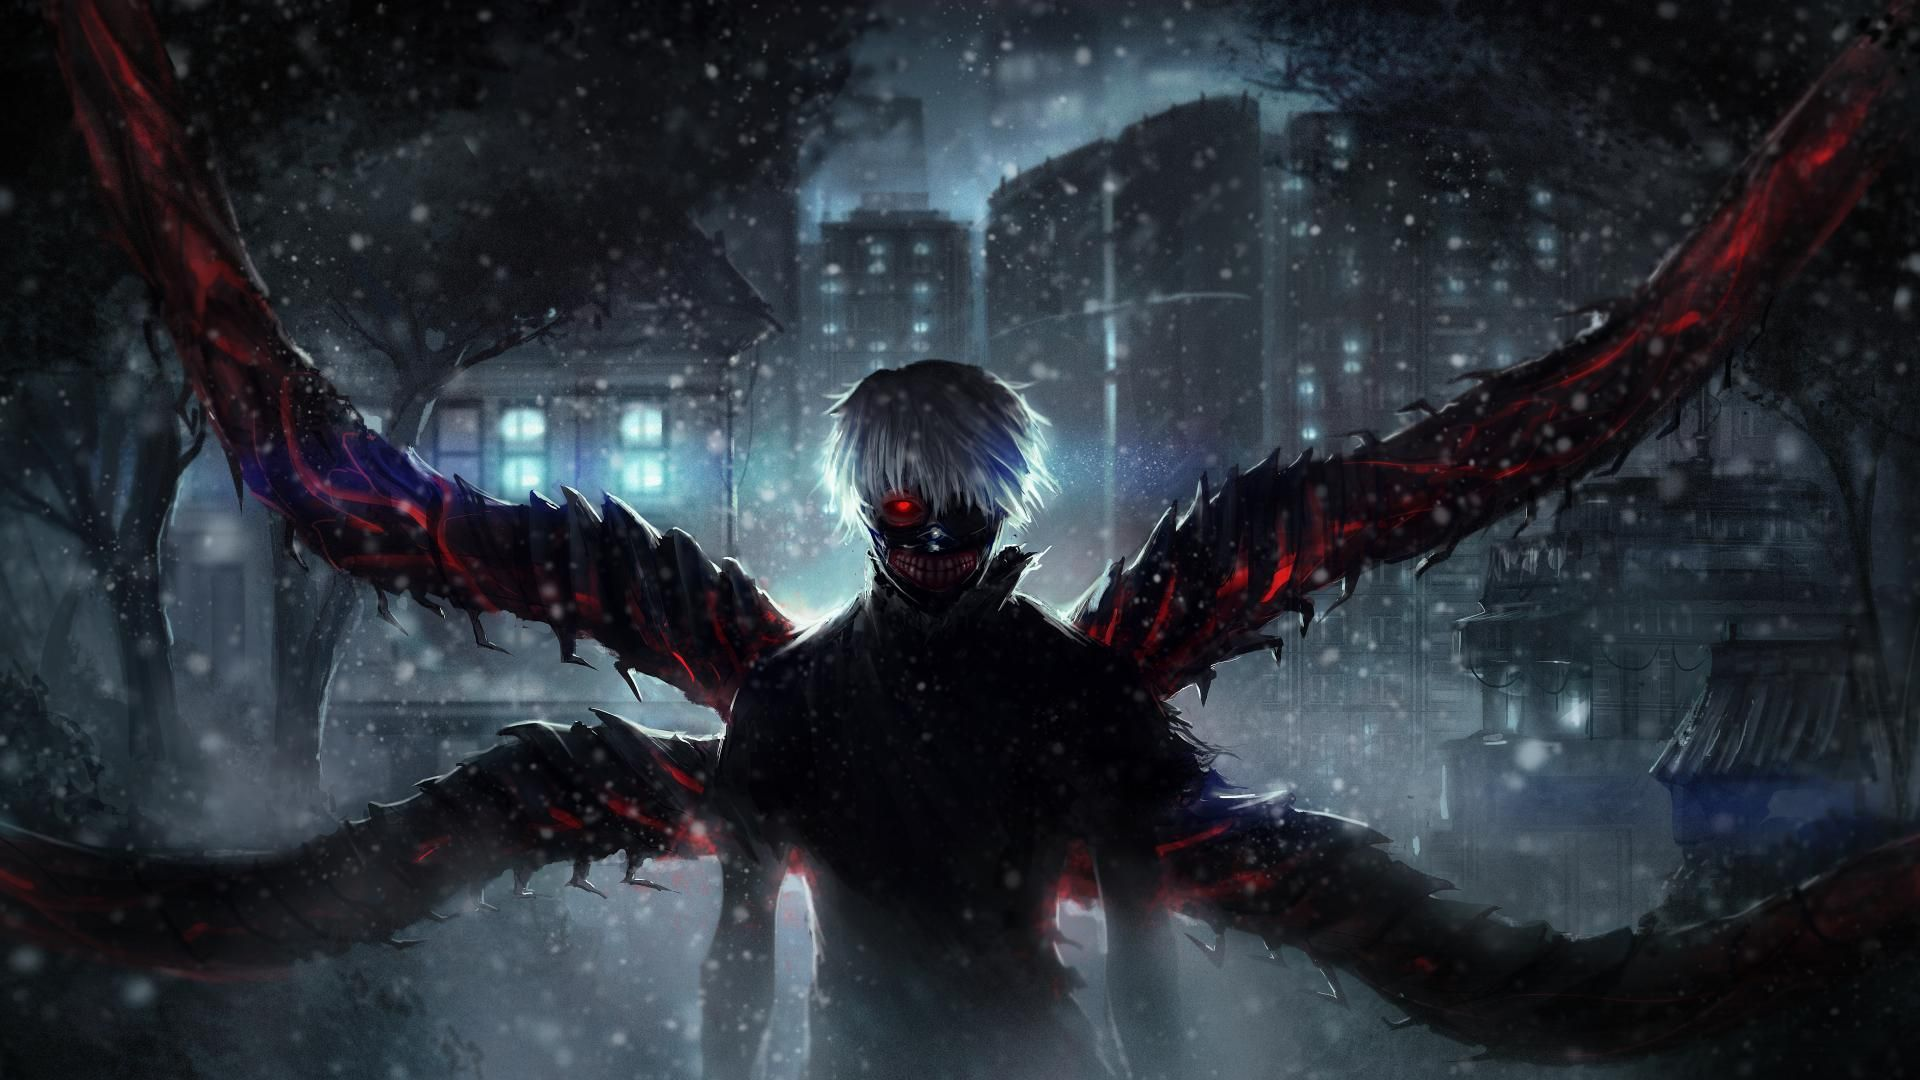 Wallpaper Collection 37 Best Free Hd Walpaper Anime Background To Download Pc Mobile T In 2020 Cool Anime Wallpapers Anime Wallpaper Download Anime Background